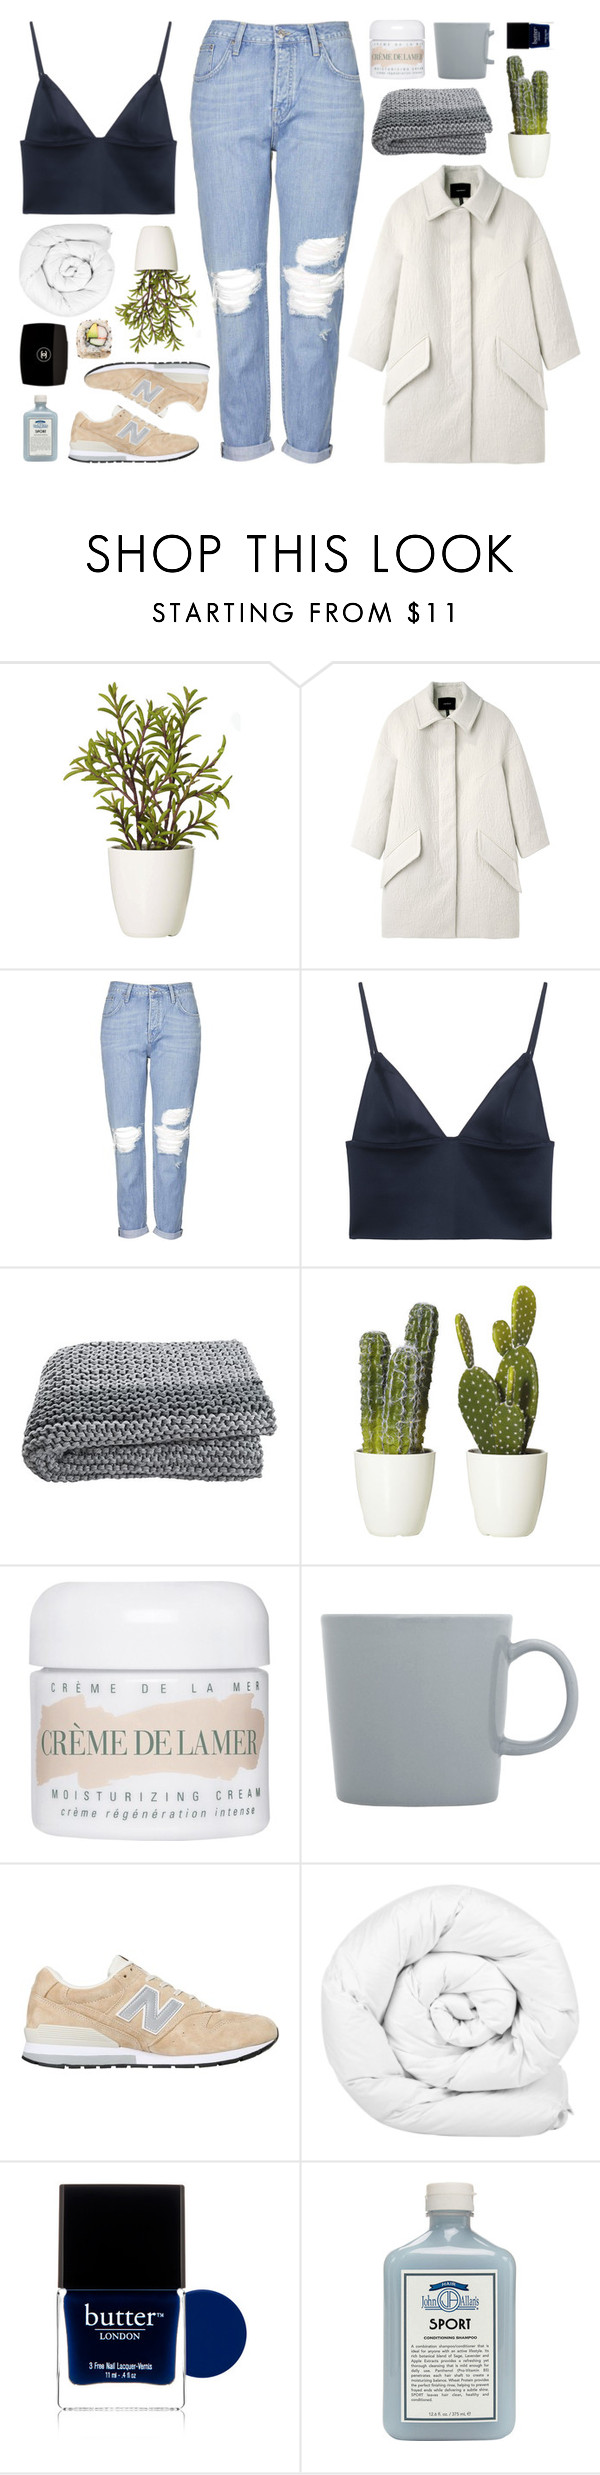 """TIA"" by jessinnnes ❤ liked on Polyvore featuring Isabel Marant, Topshop, T By Alexander Wang, La Mer, iittala, New Balance, Brinkhaus, Butter London, John Allan's and Chanel"